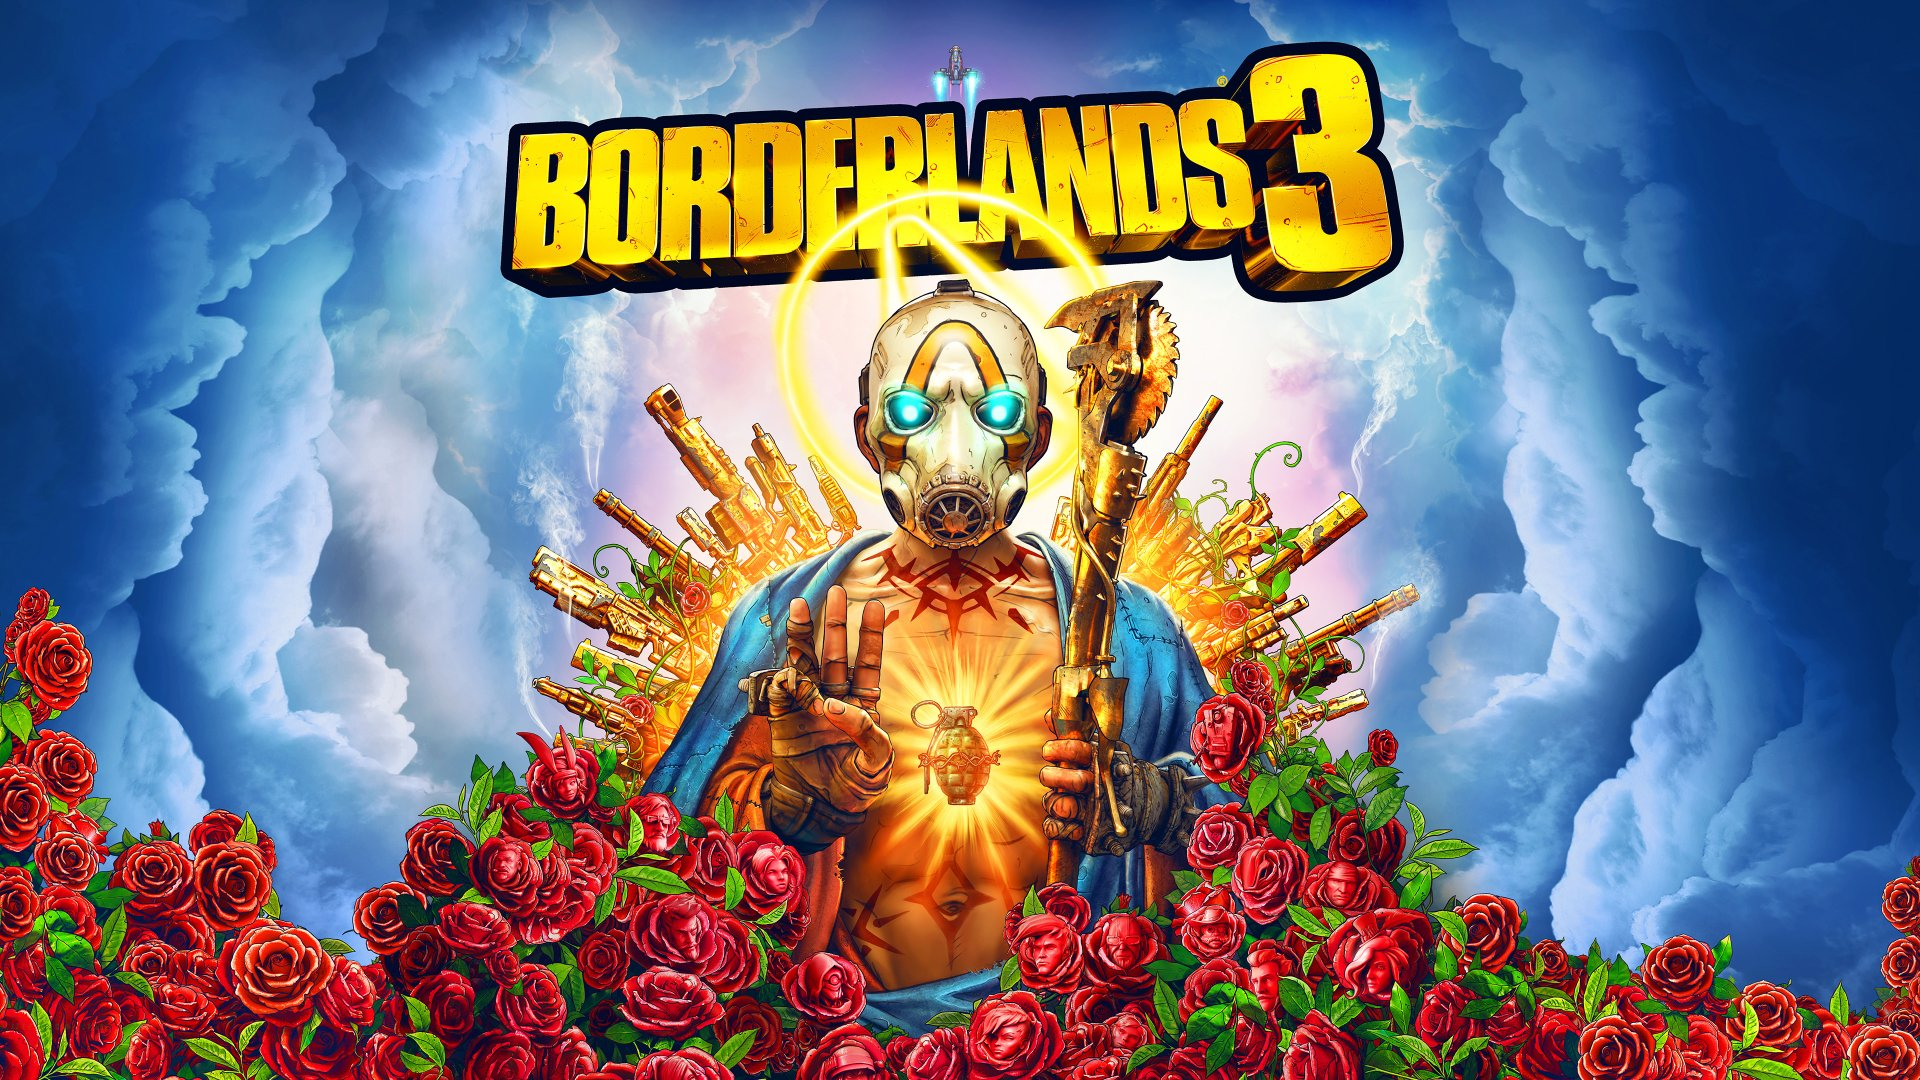 Borderlands 3 4k Ultra HD Wallpapers